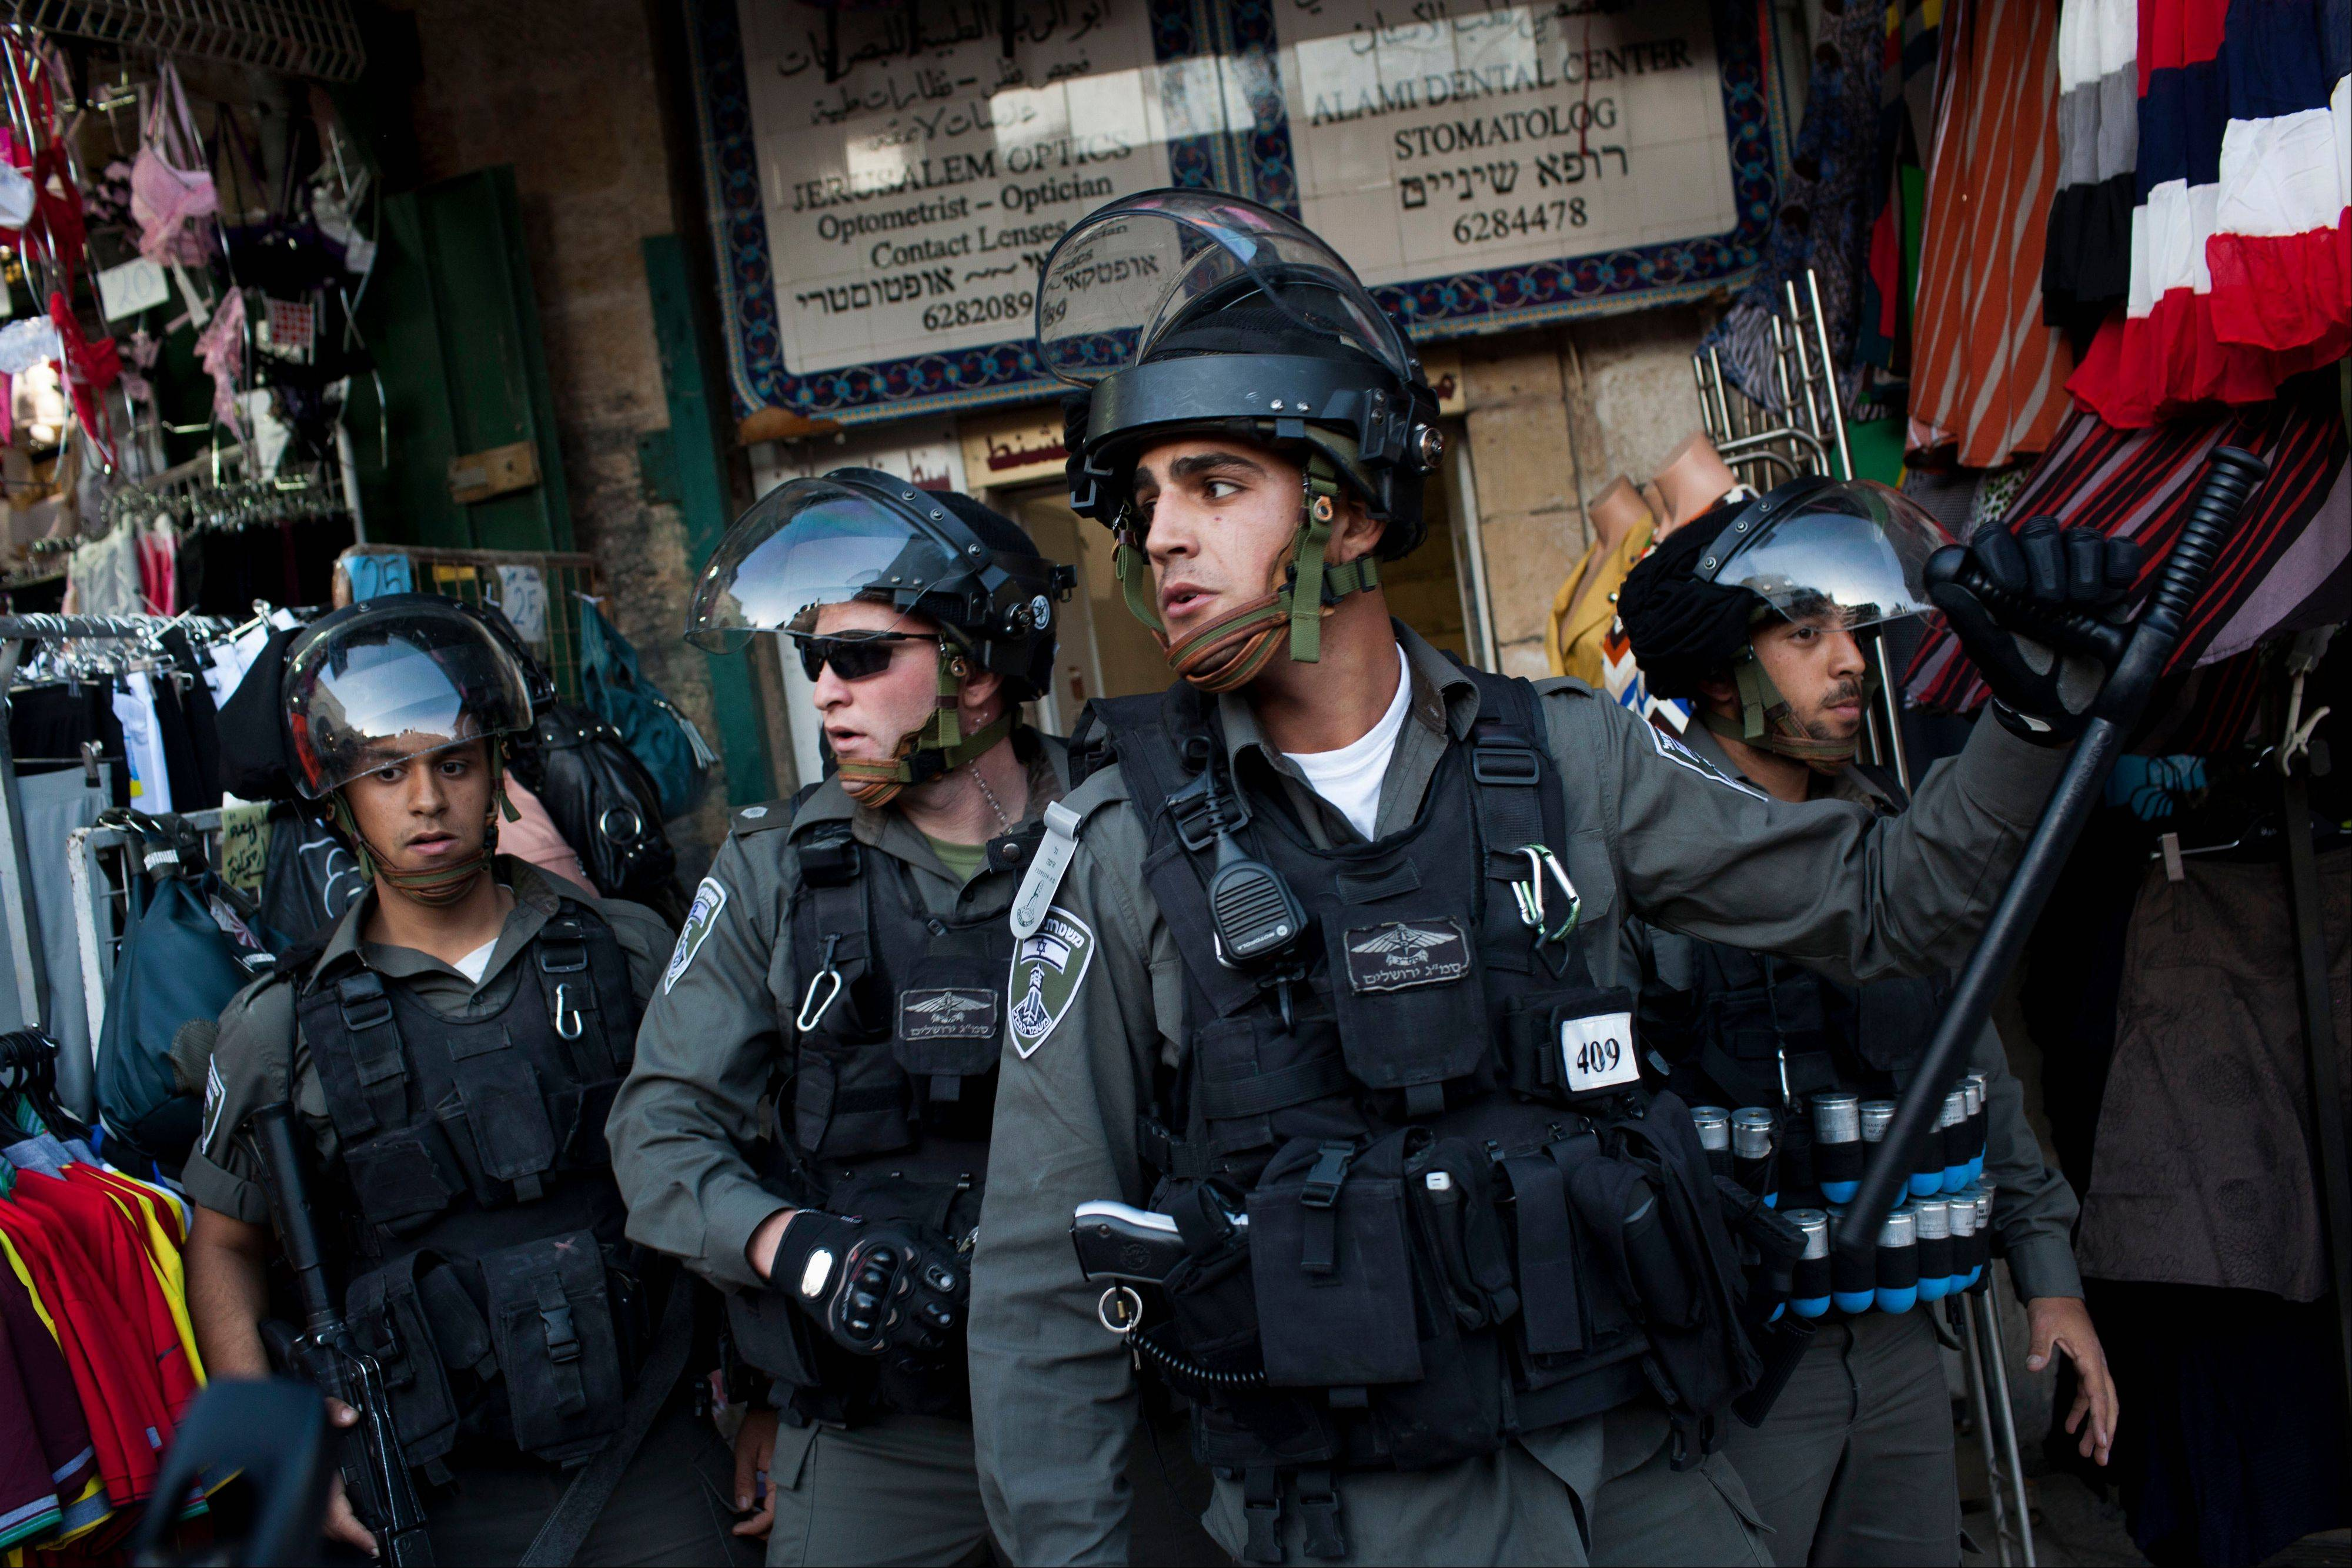 Israeli Border Police take position during clashes in Jerusalem�s Old City, Tuesday, April 2, 2013. Clashes erupted during a protest in support of Maysara Abu Hamdiyeh, 64, who was serving a life sentence for his role in a foiled attempt to bomb a busy cafe in Jerusalem in 2002, and died Tuesday of cancer in an Israeli jail. Tensions are high in Israeli lockups where thousands of Palestinian security prisoners are being held.